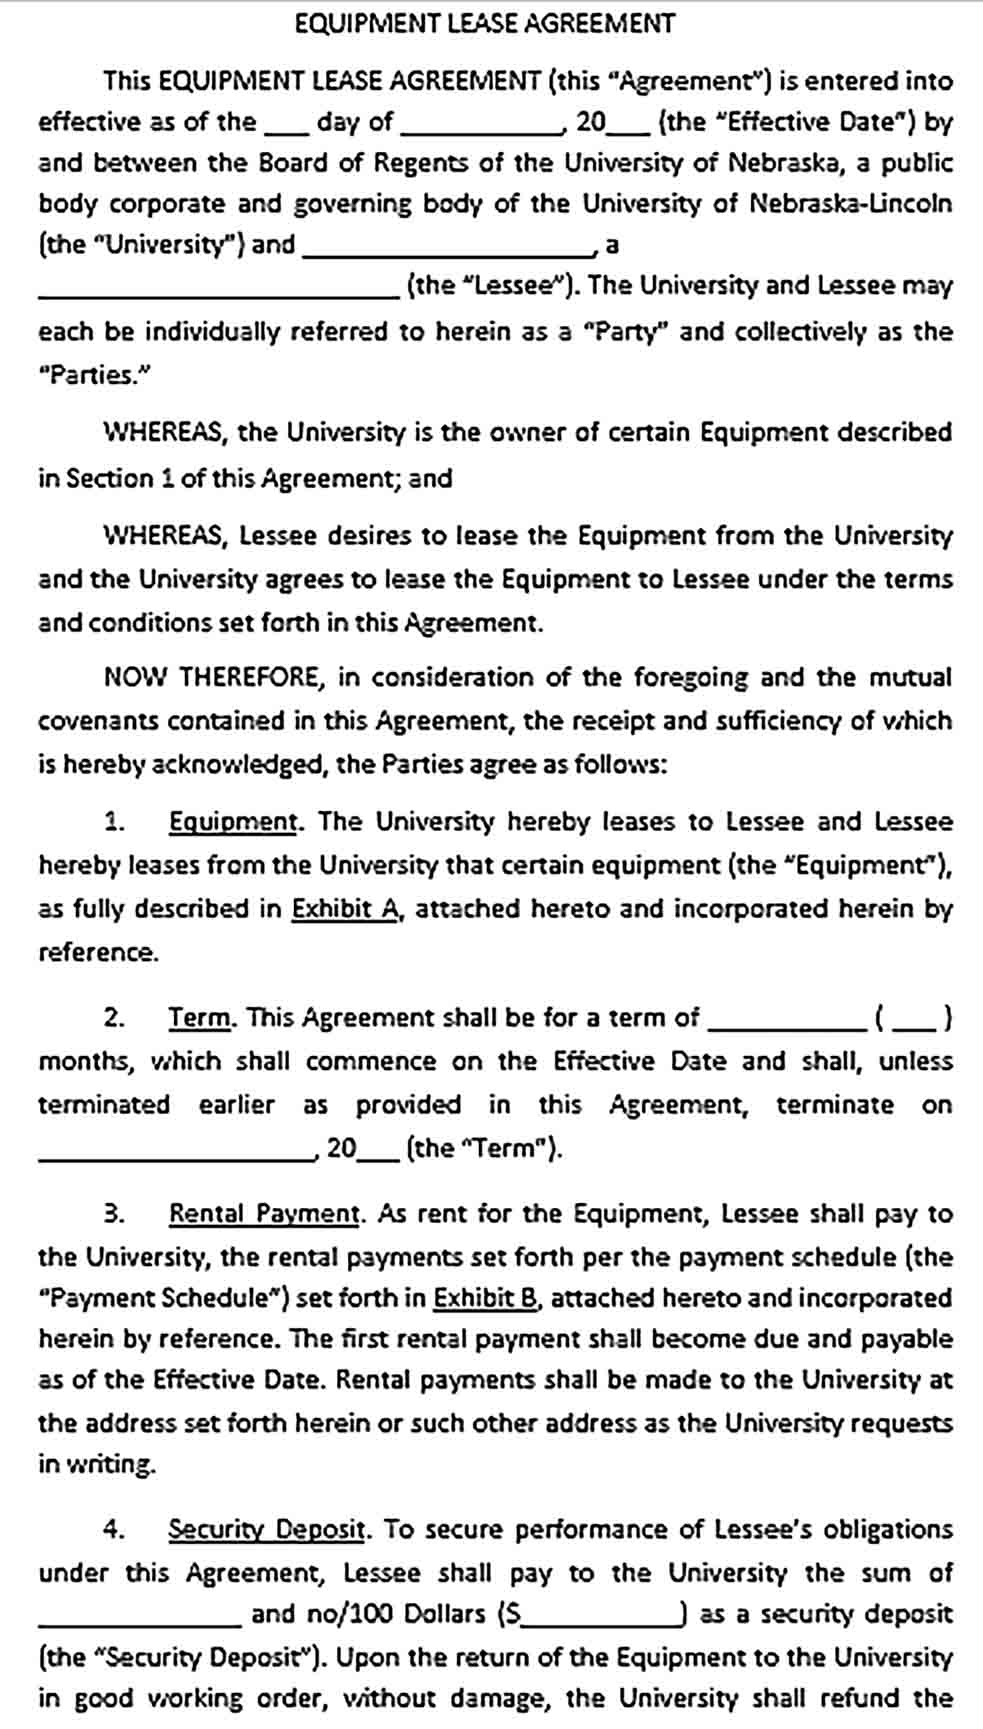 Sample Commercial Equipment Lease Agreement